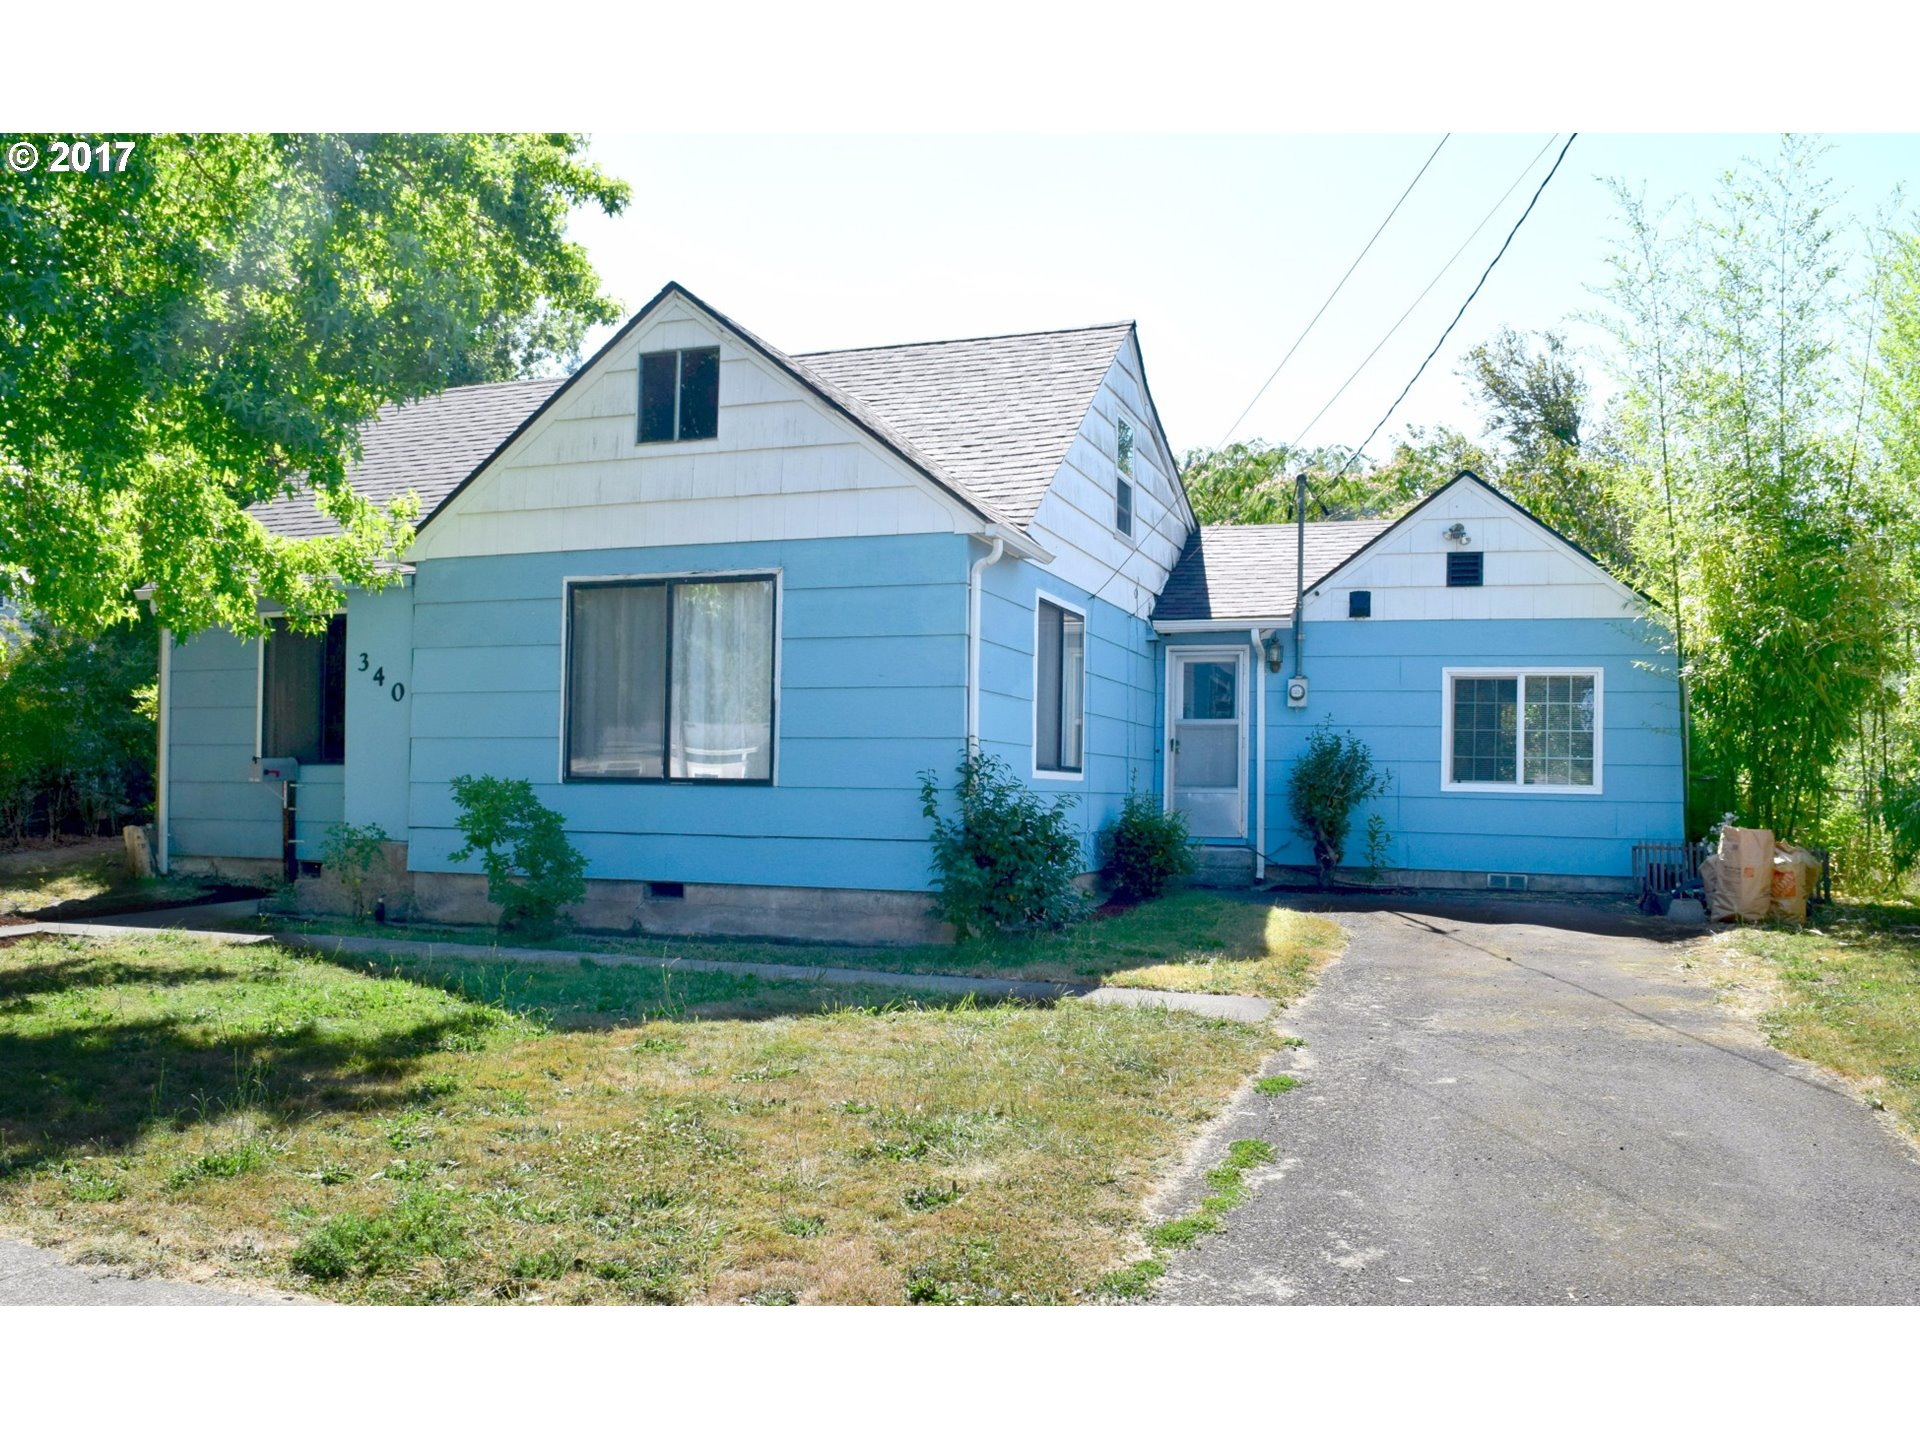 340 7TH AVE, Sweet Home, OR 97386